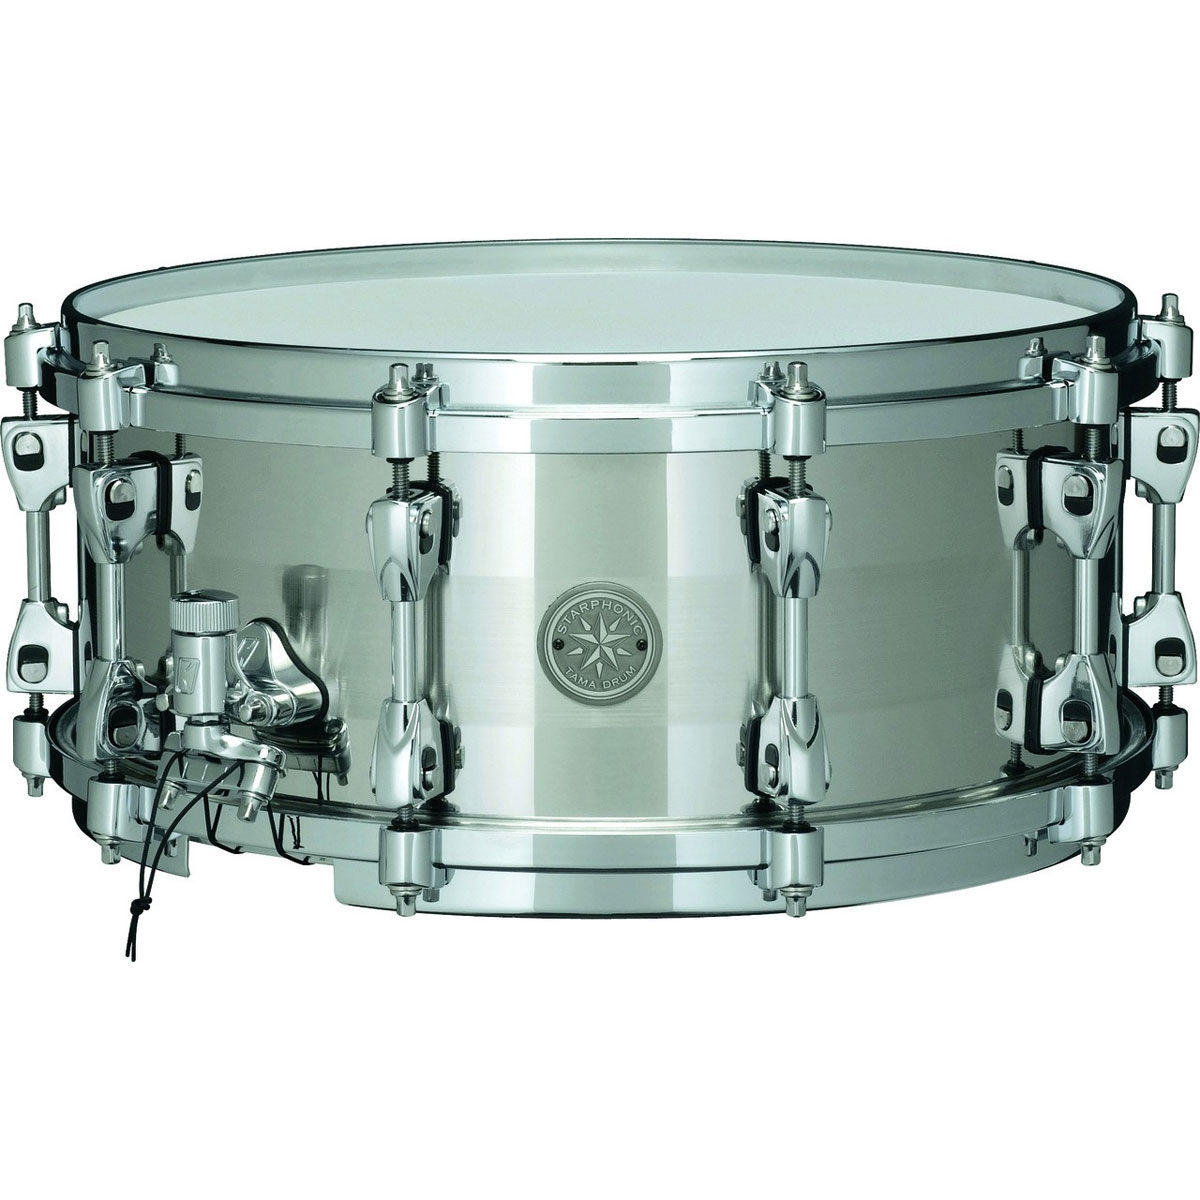 "Tama 6"" x 14"" Starphonic Stainless Steel Snare Drum"